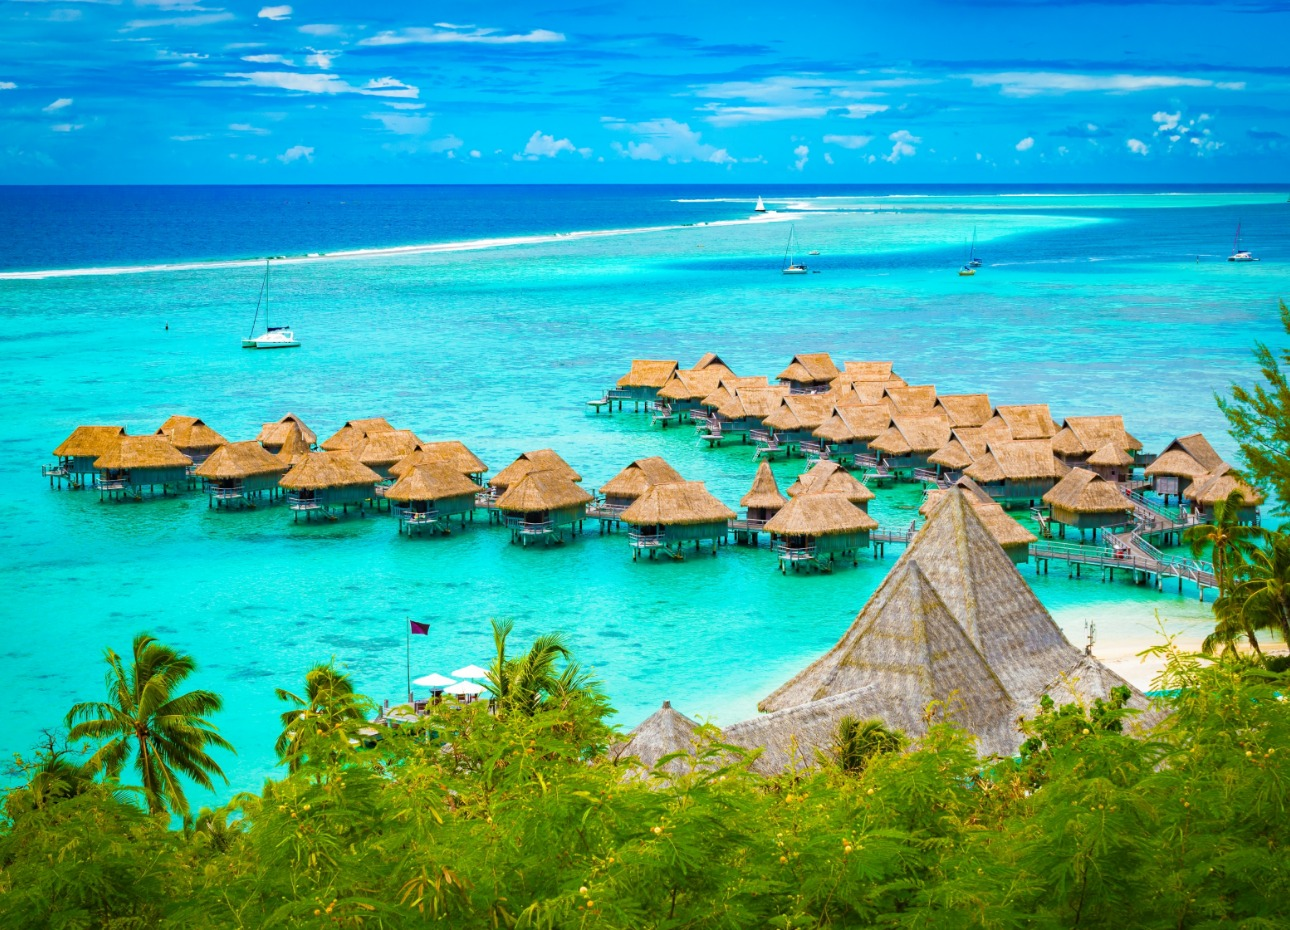 French Polynesia island image of hotel resort overwater bungalows